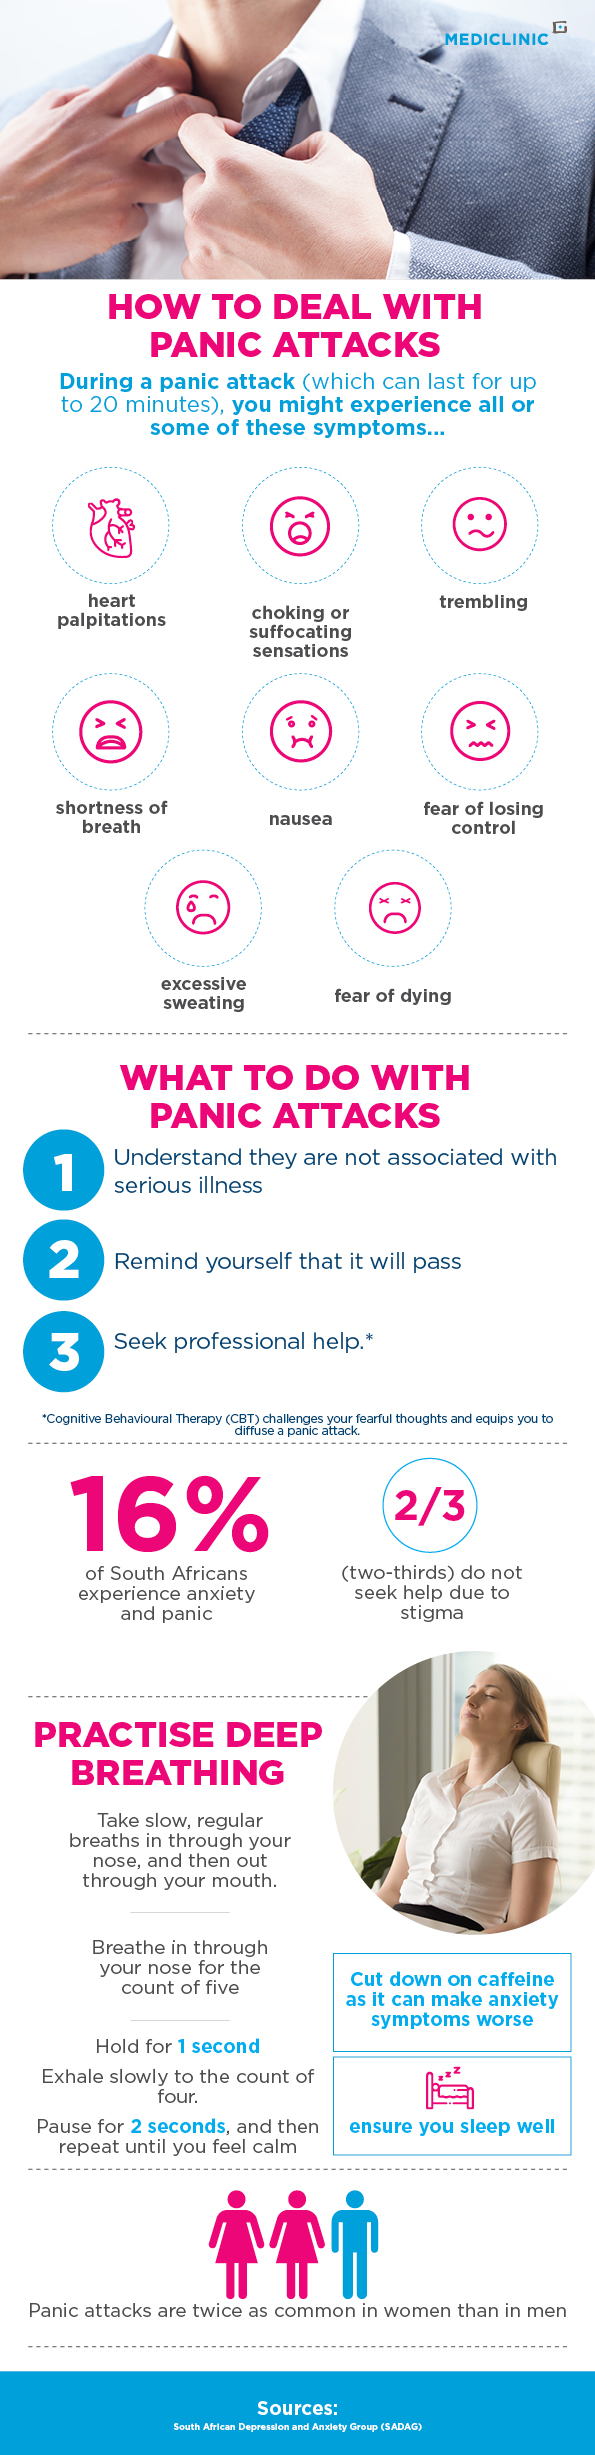 panic attacks, panic attacks infographic